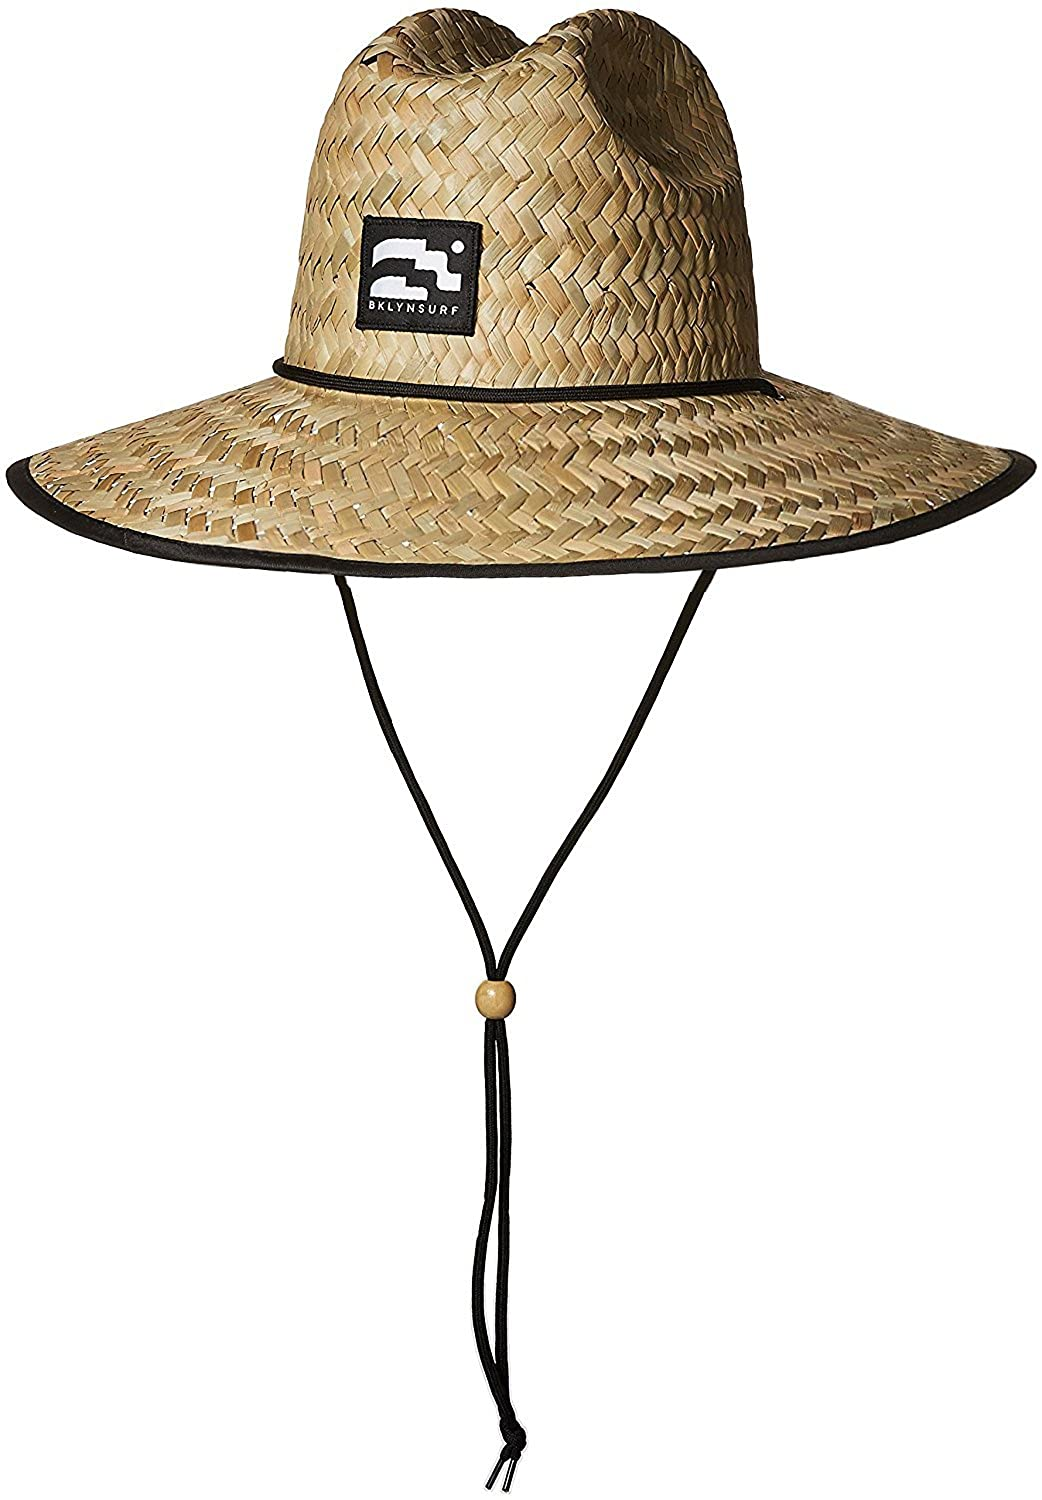 Brooklyn Surf Men's Straw Sun Lifeguard Beach Hat Raffia Wide Brim, Natural One Size